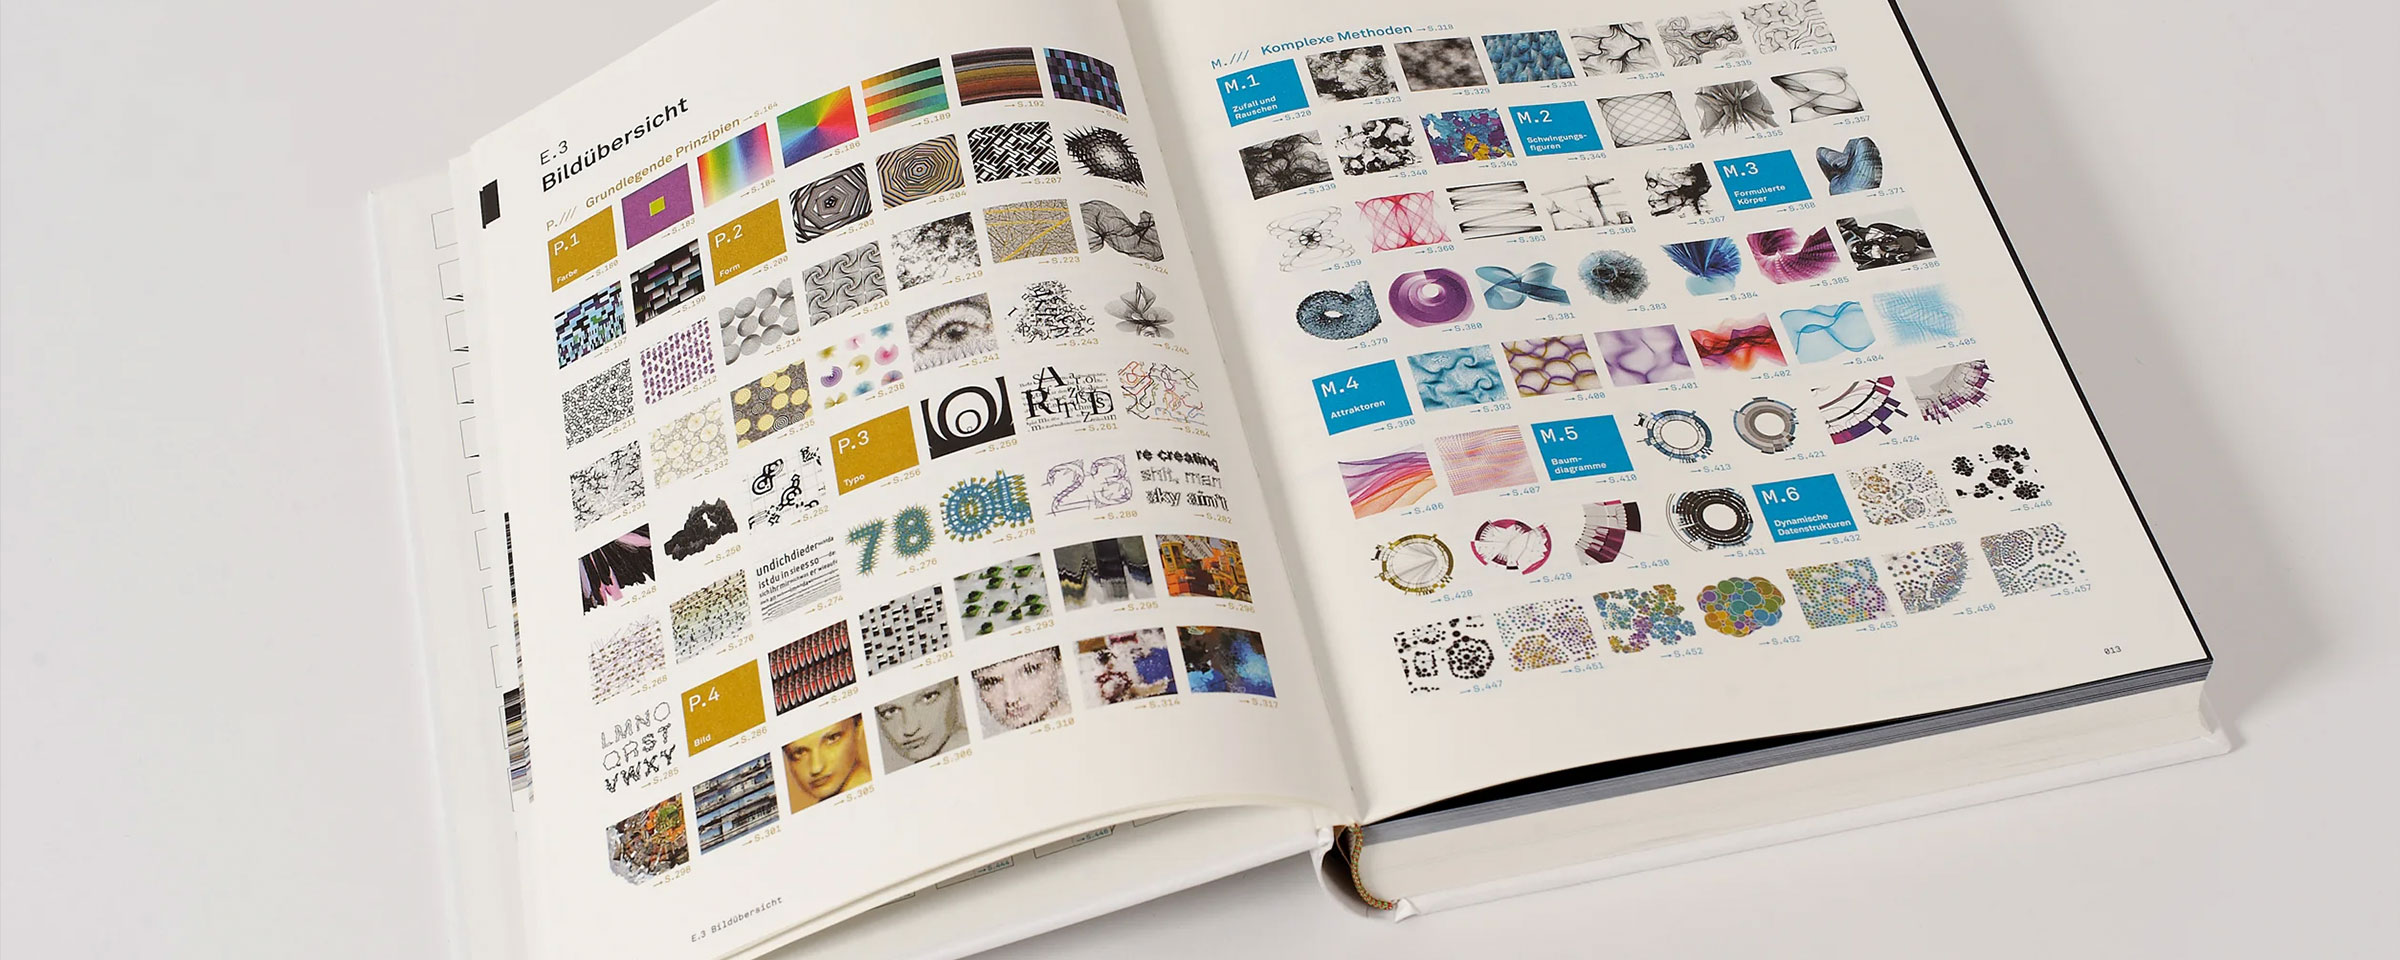 Generative Gestaltung book with the overview page open